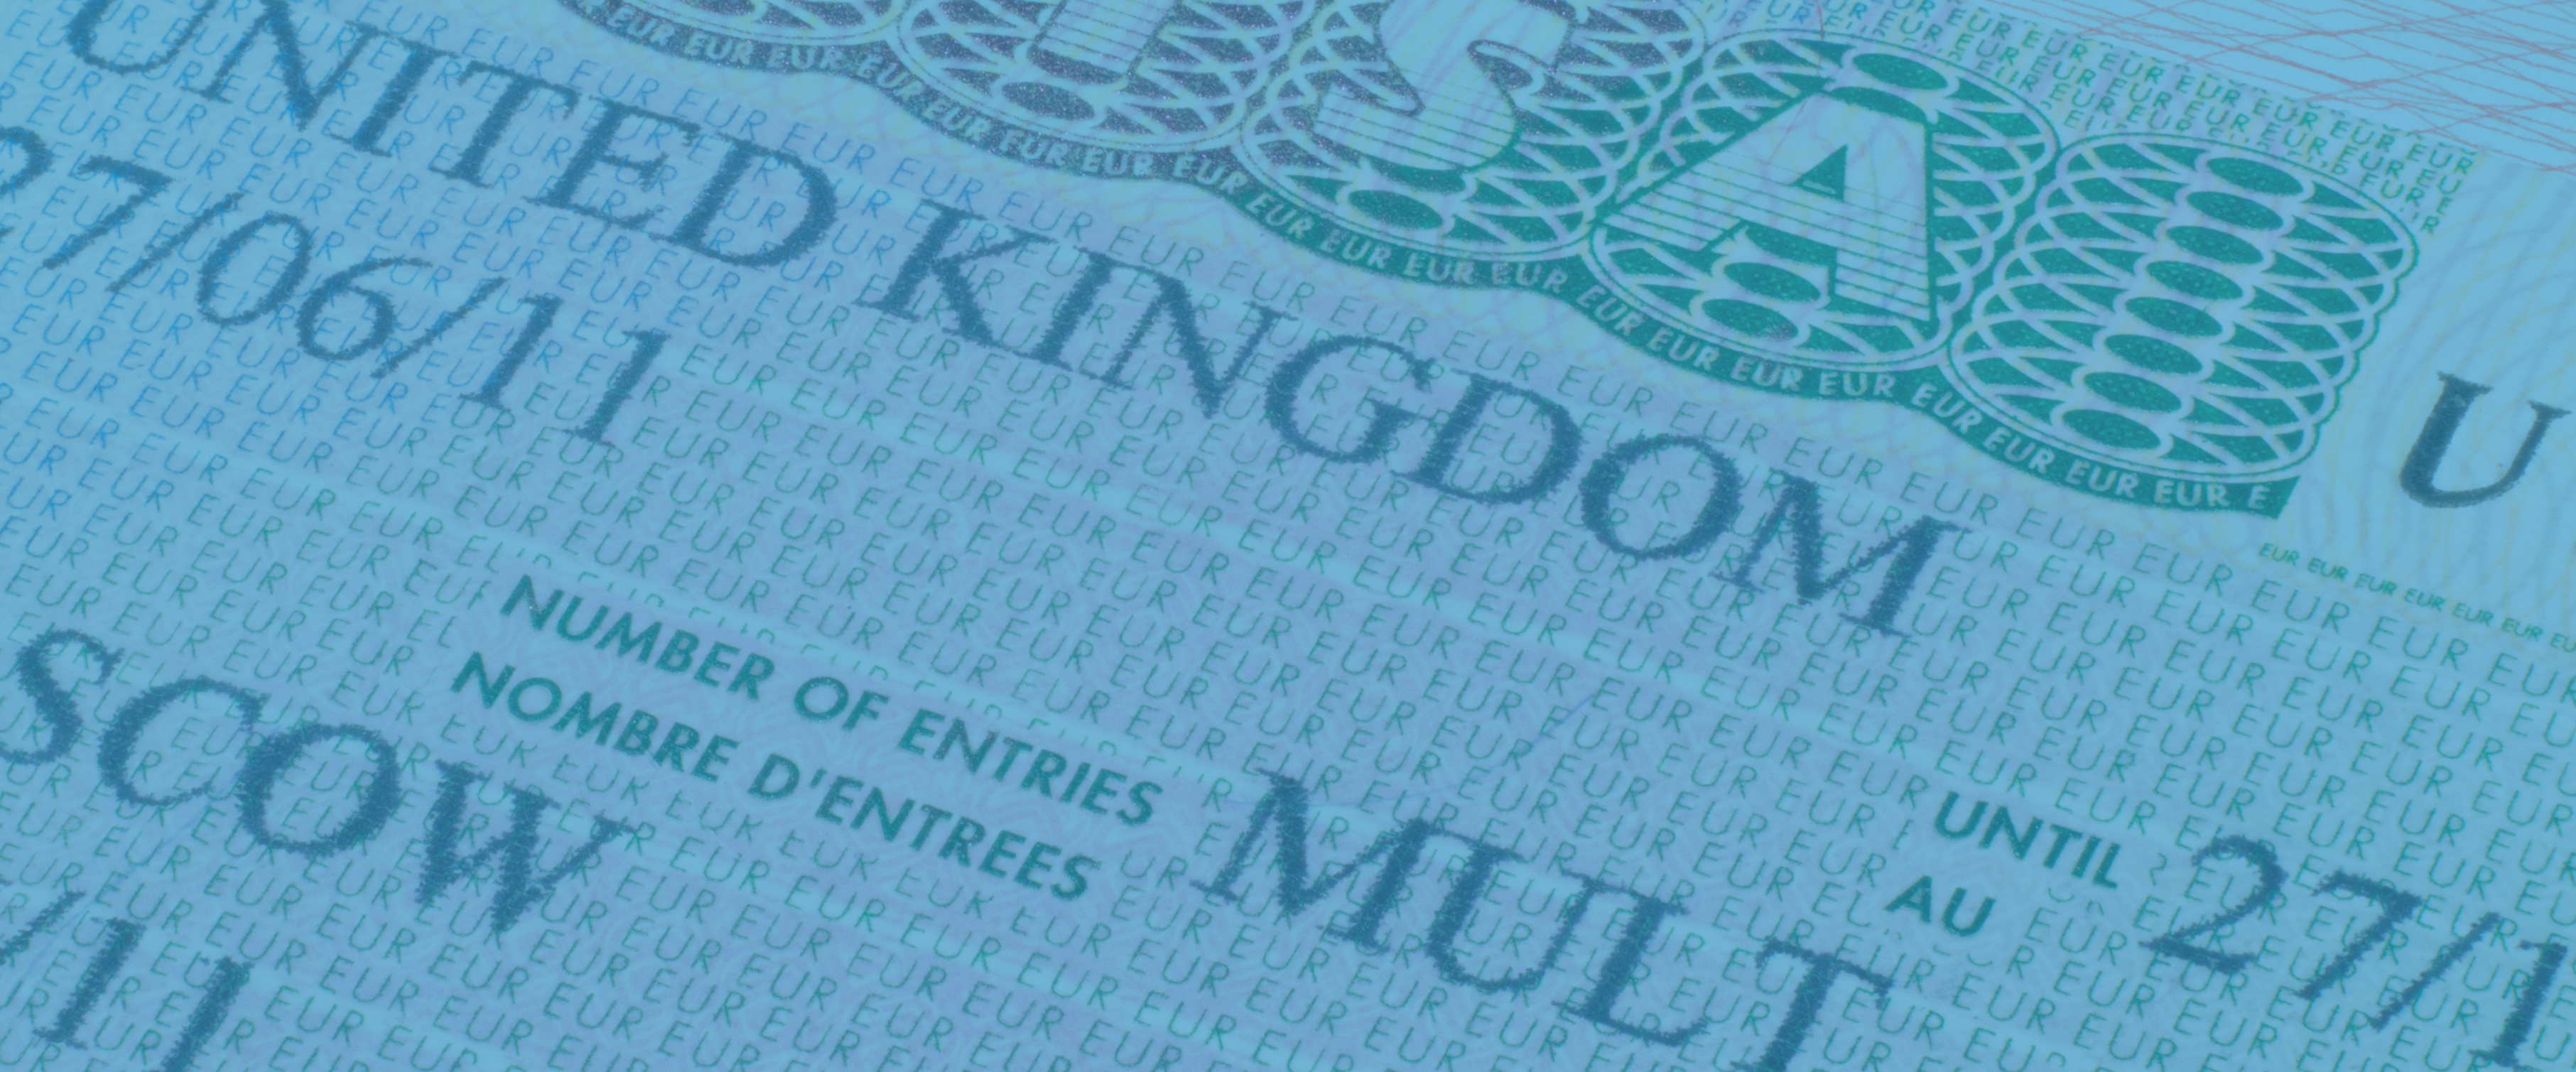 Changes to the United Kingdom Immigration Rules